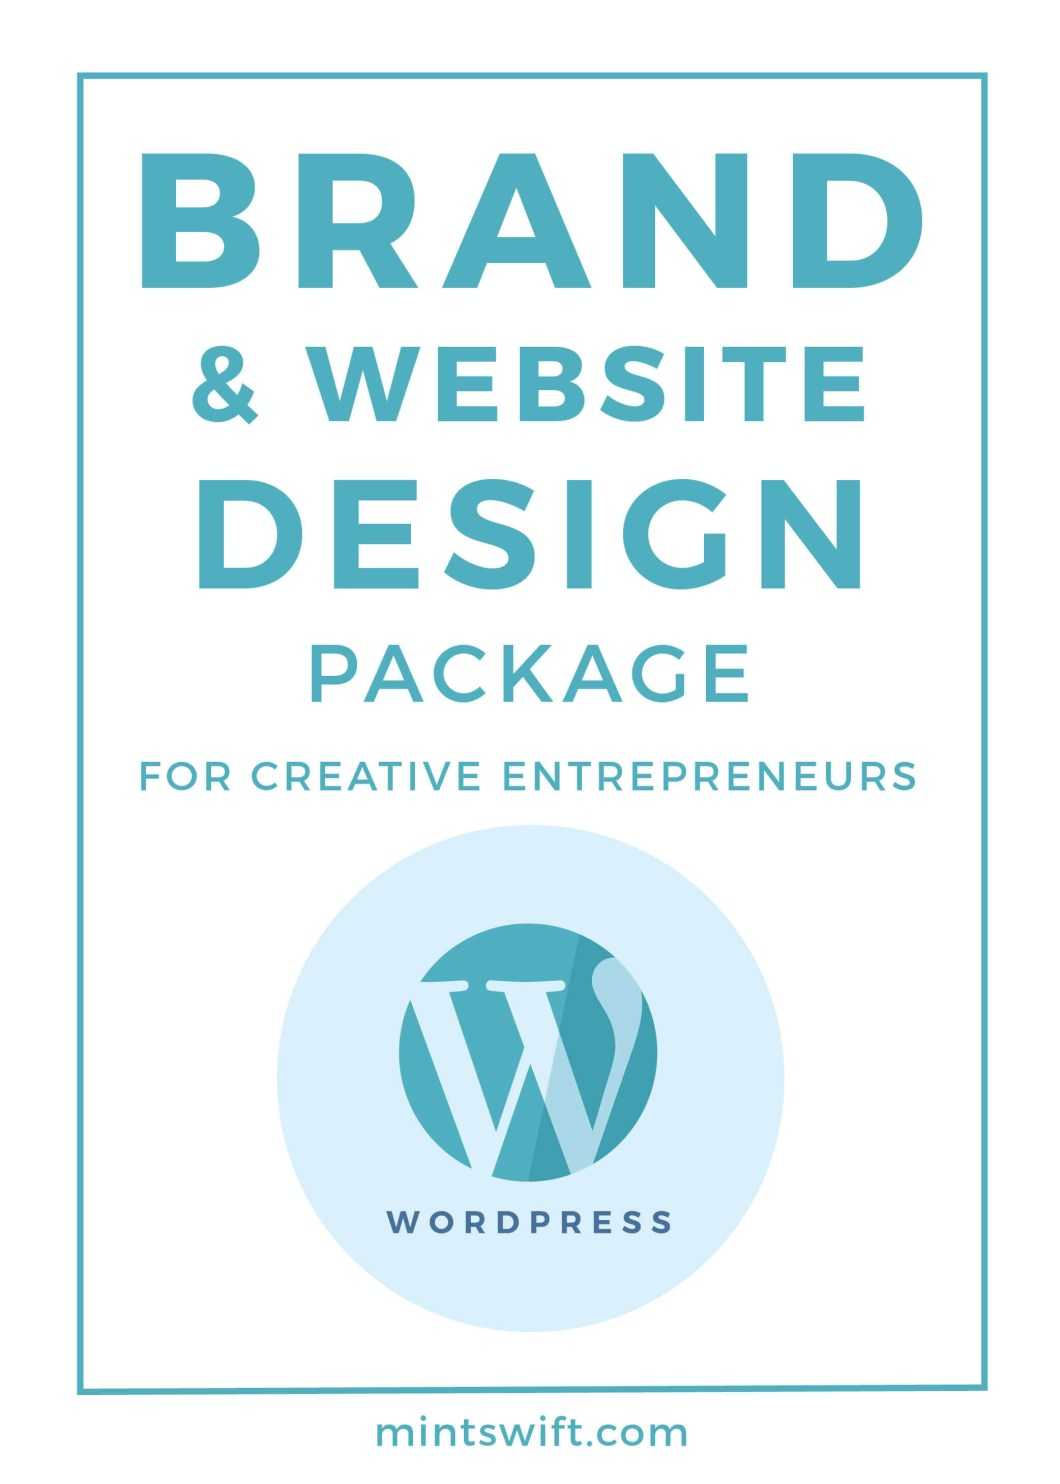 Brand Design | Brand identity design | Brand & Website Design | WordPress Design | Branding | Logo Design | Web Design | Brand & web design packages for creative entrepreneurs who understand that strong visual identity is essential in building a profitable business | Brand & Website Design services | Brand & Website Design Packages | Branding for bloggers | MintSwift | Brand Designer | Website Designer | Blog Design | Web Designer | Brand identity design for small business owners | Brand & Website Design for creative entrepreneurs | Brand that truly reflects you | One-of-the-kind brand identity | Brand consistency | Cohesive branding | Build a one-of-the-kind brand identity that truly represents you | Strong visual identity | Custom WordPress website design